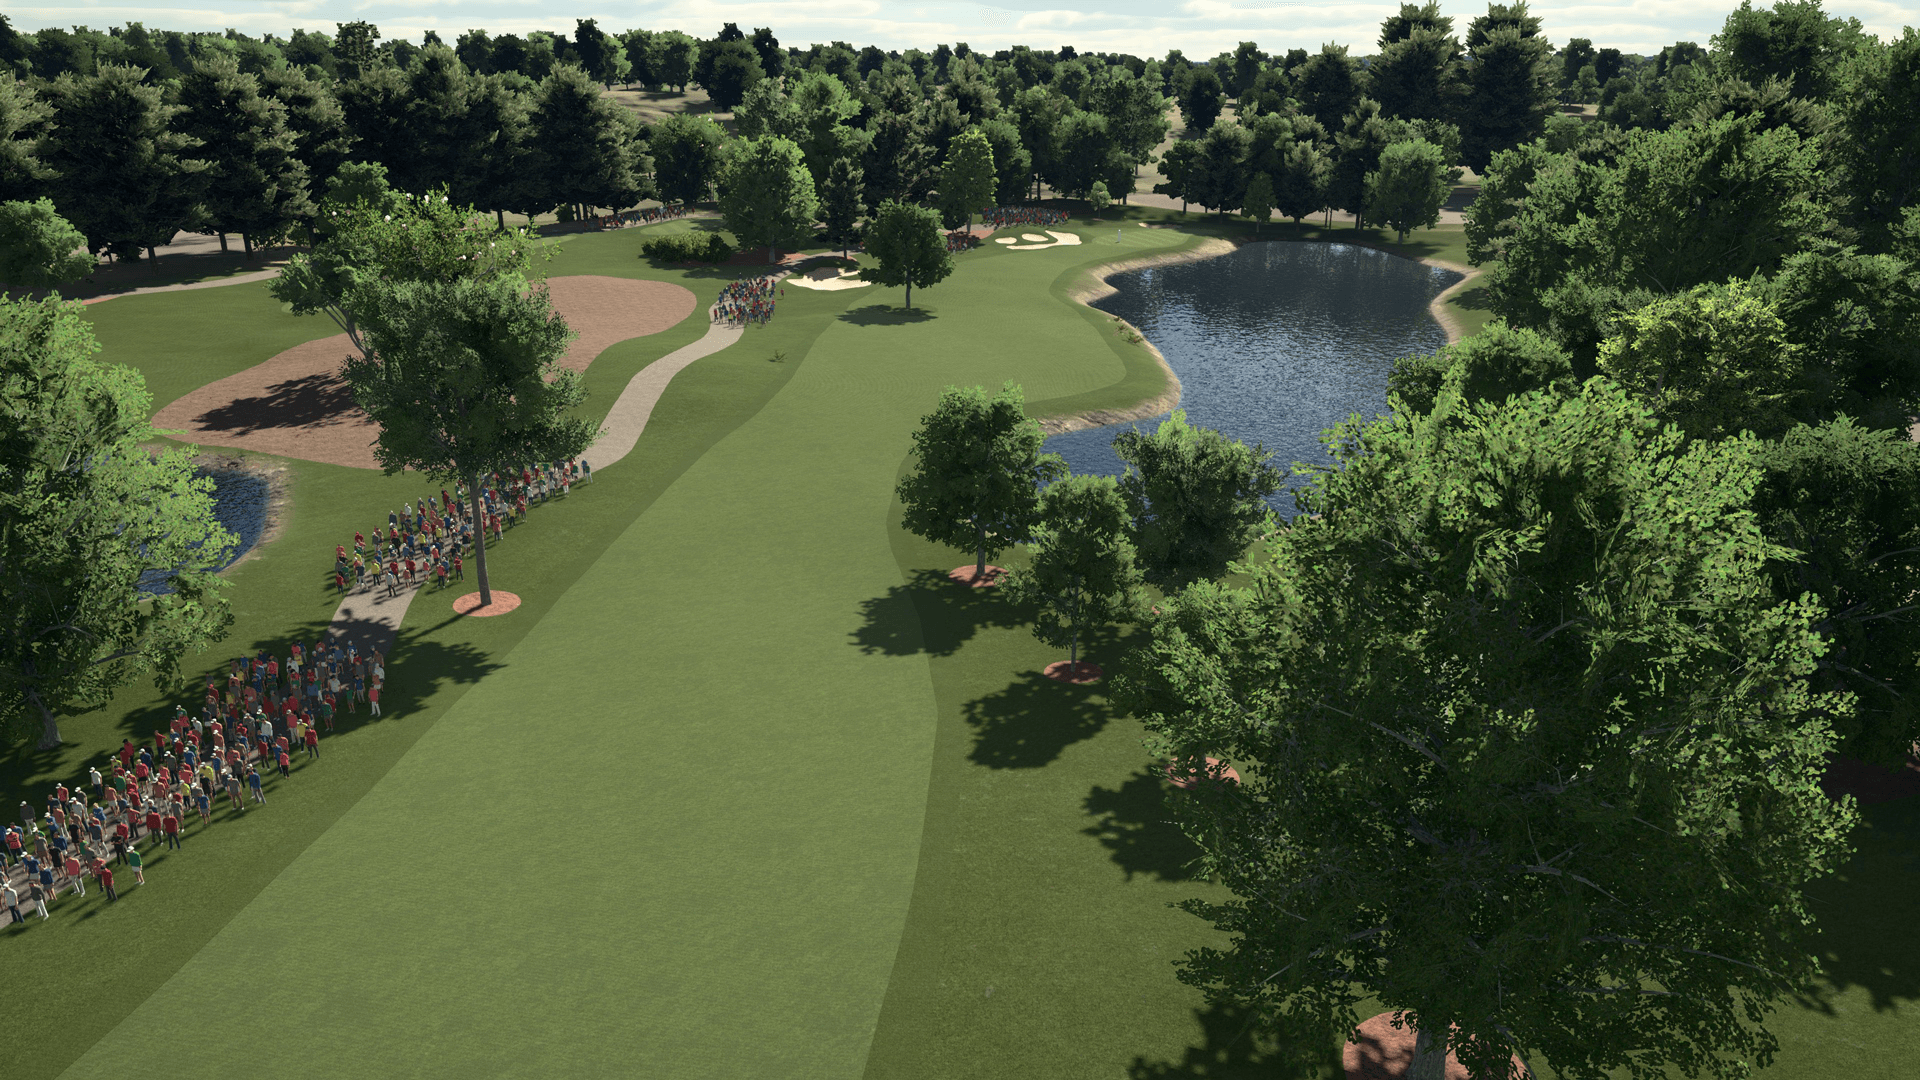 The Golf Club 2019 featuring the PGA TOUR (EU)